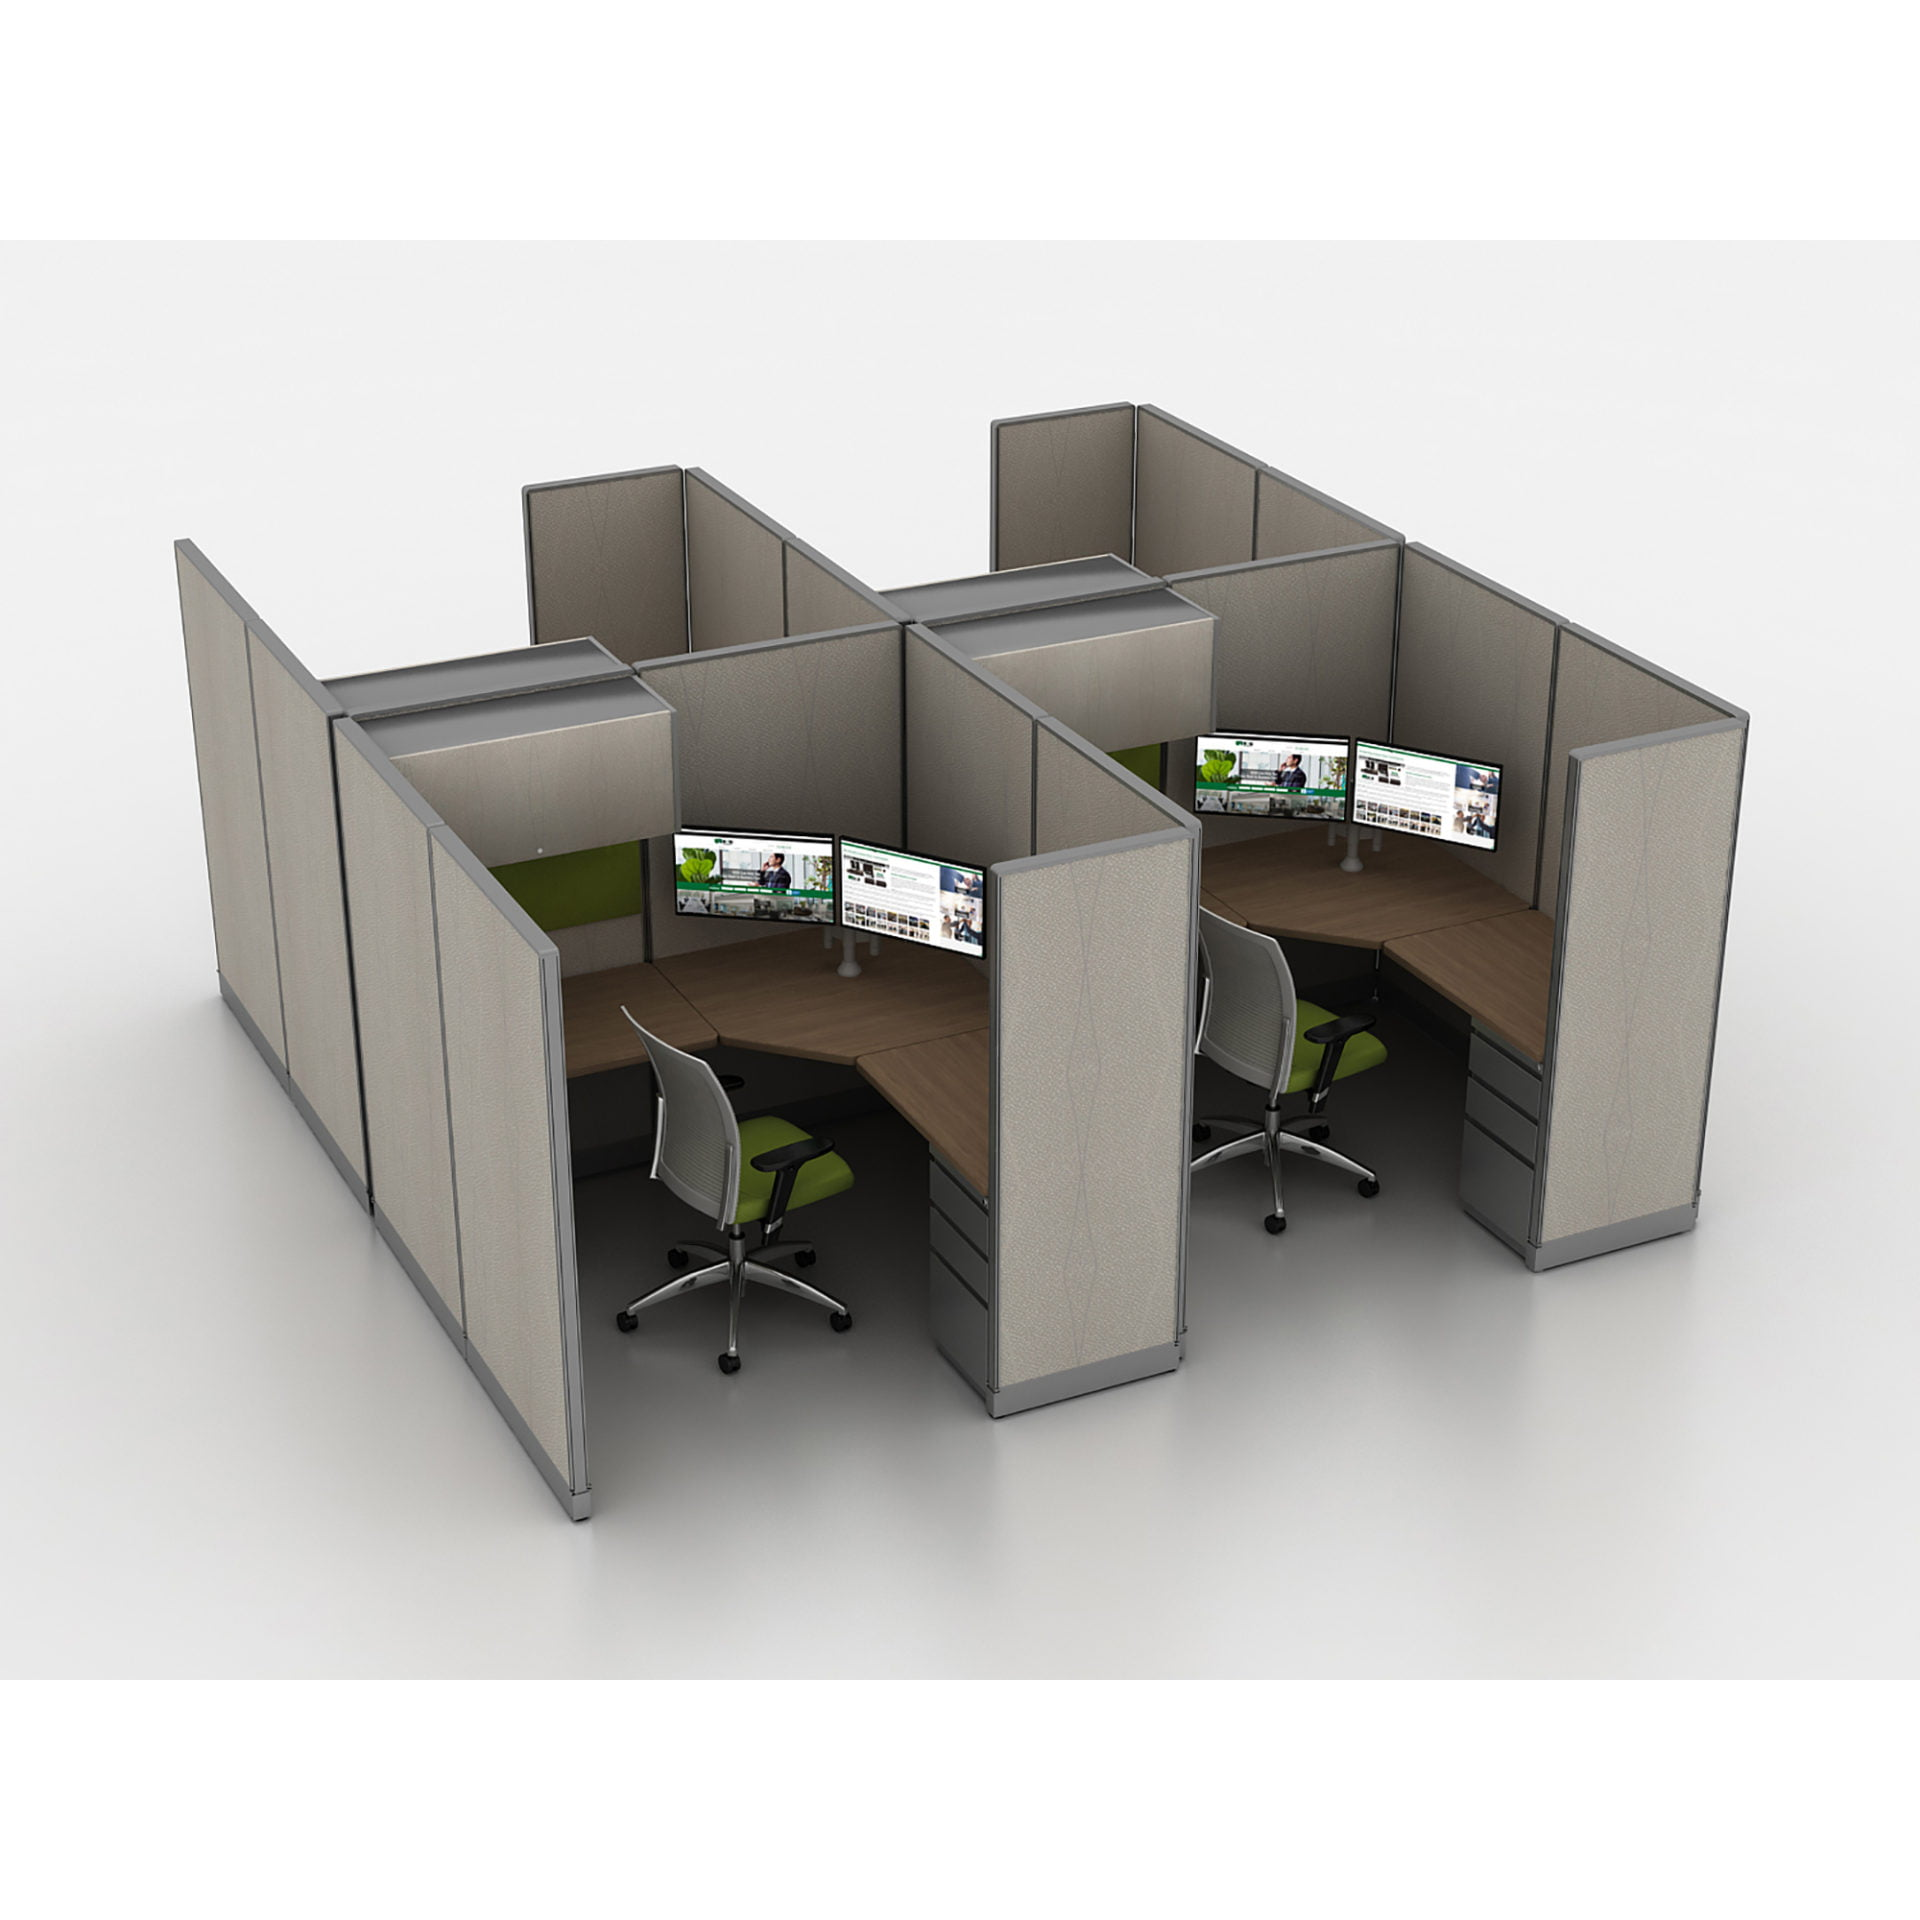 Used Cubicles Remanufactured Cubicles High Paneled Private